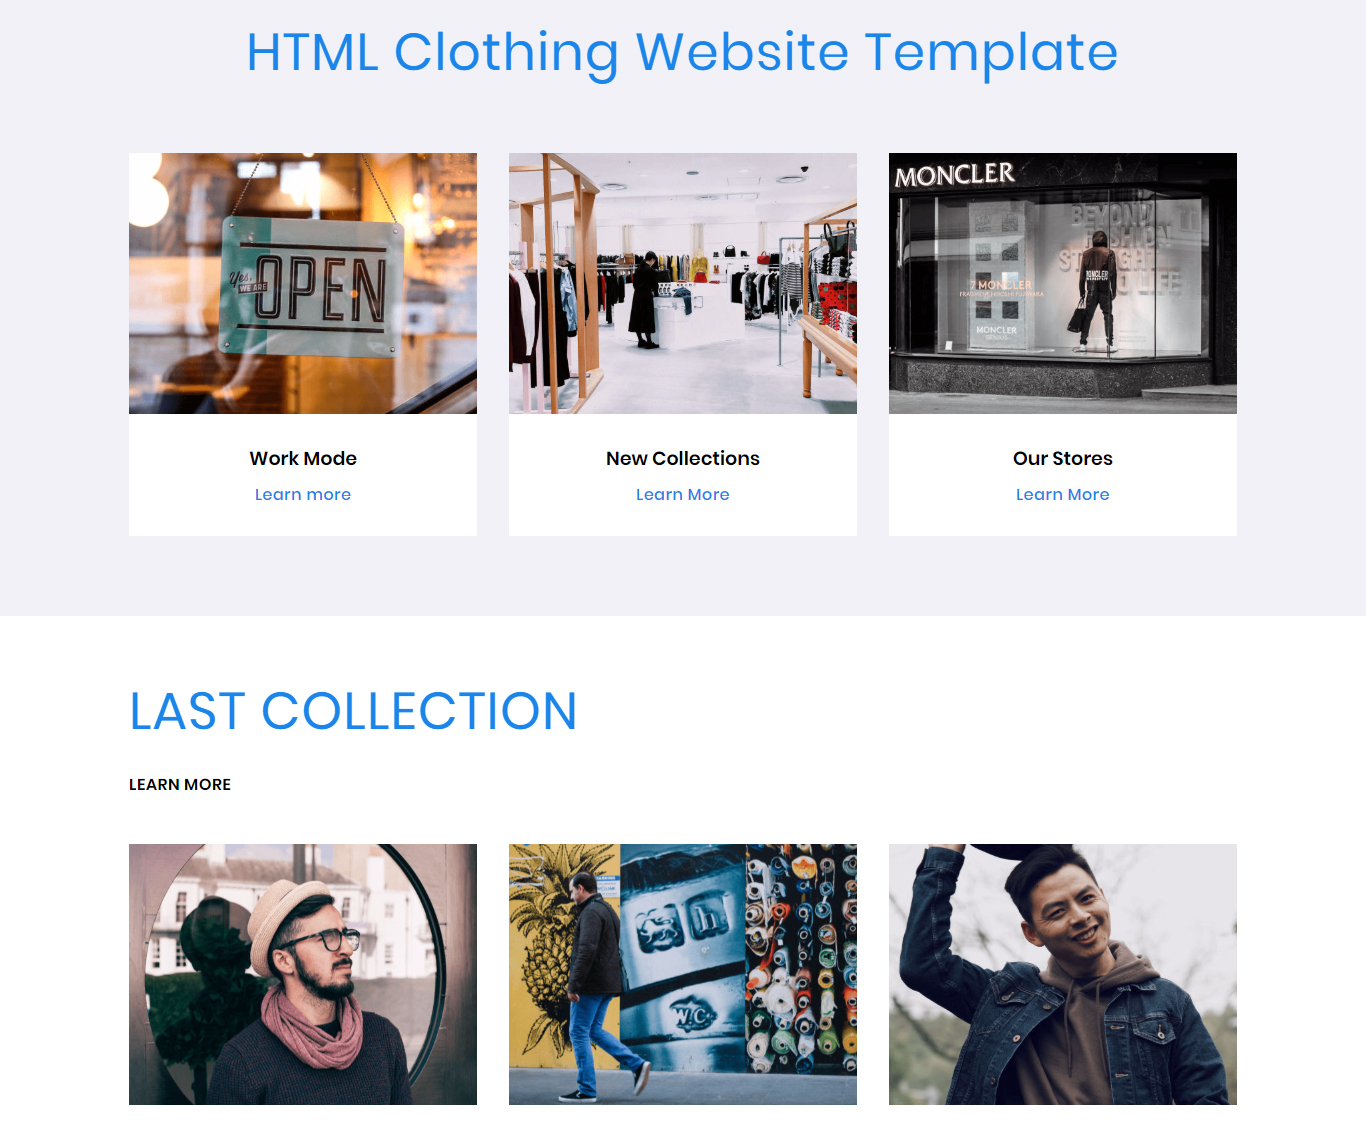 HTML Clothing Website Template